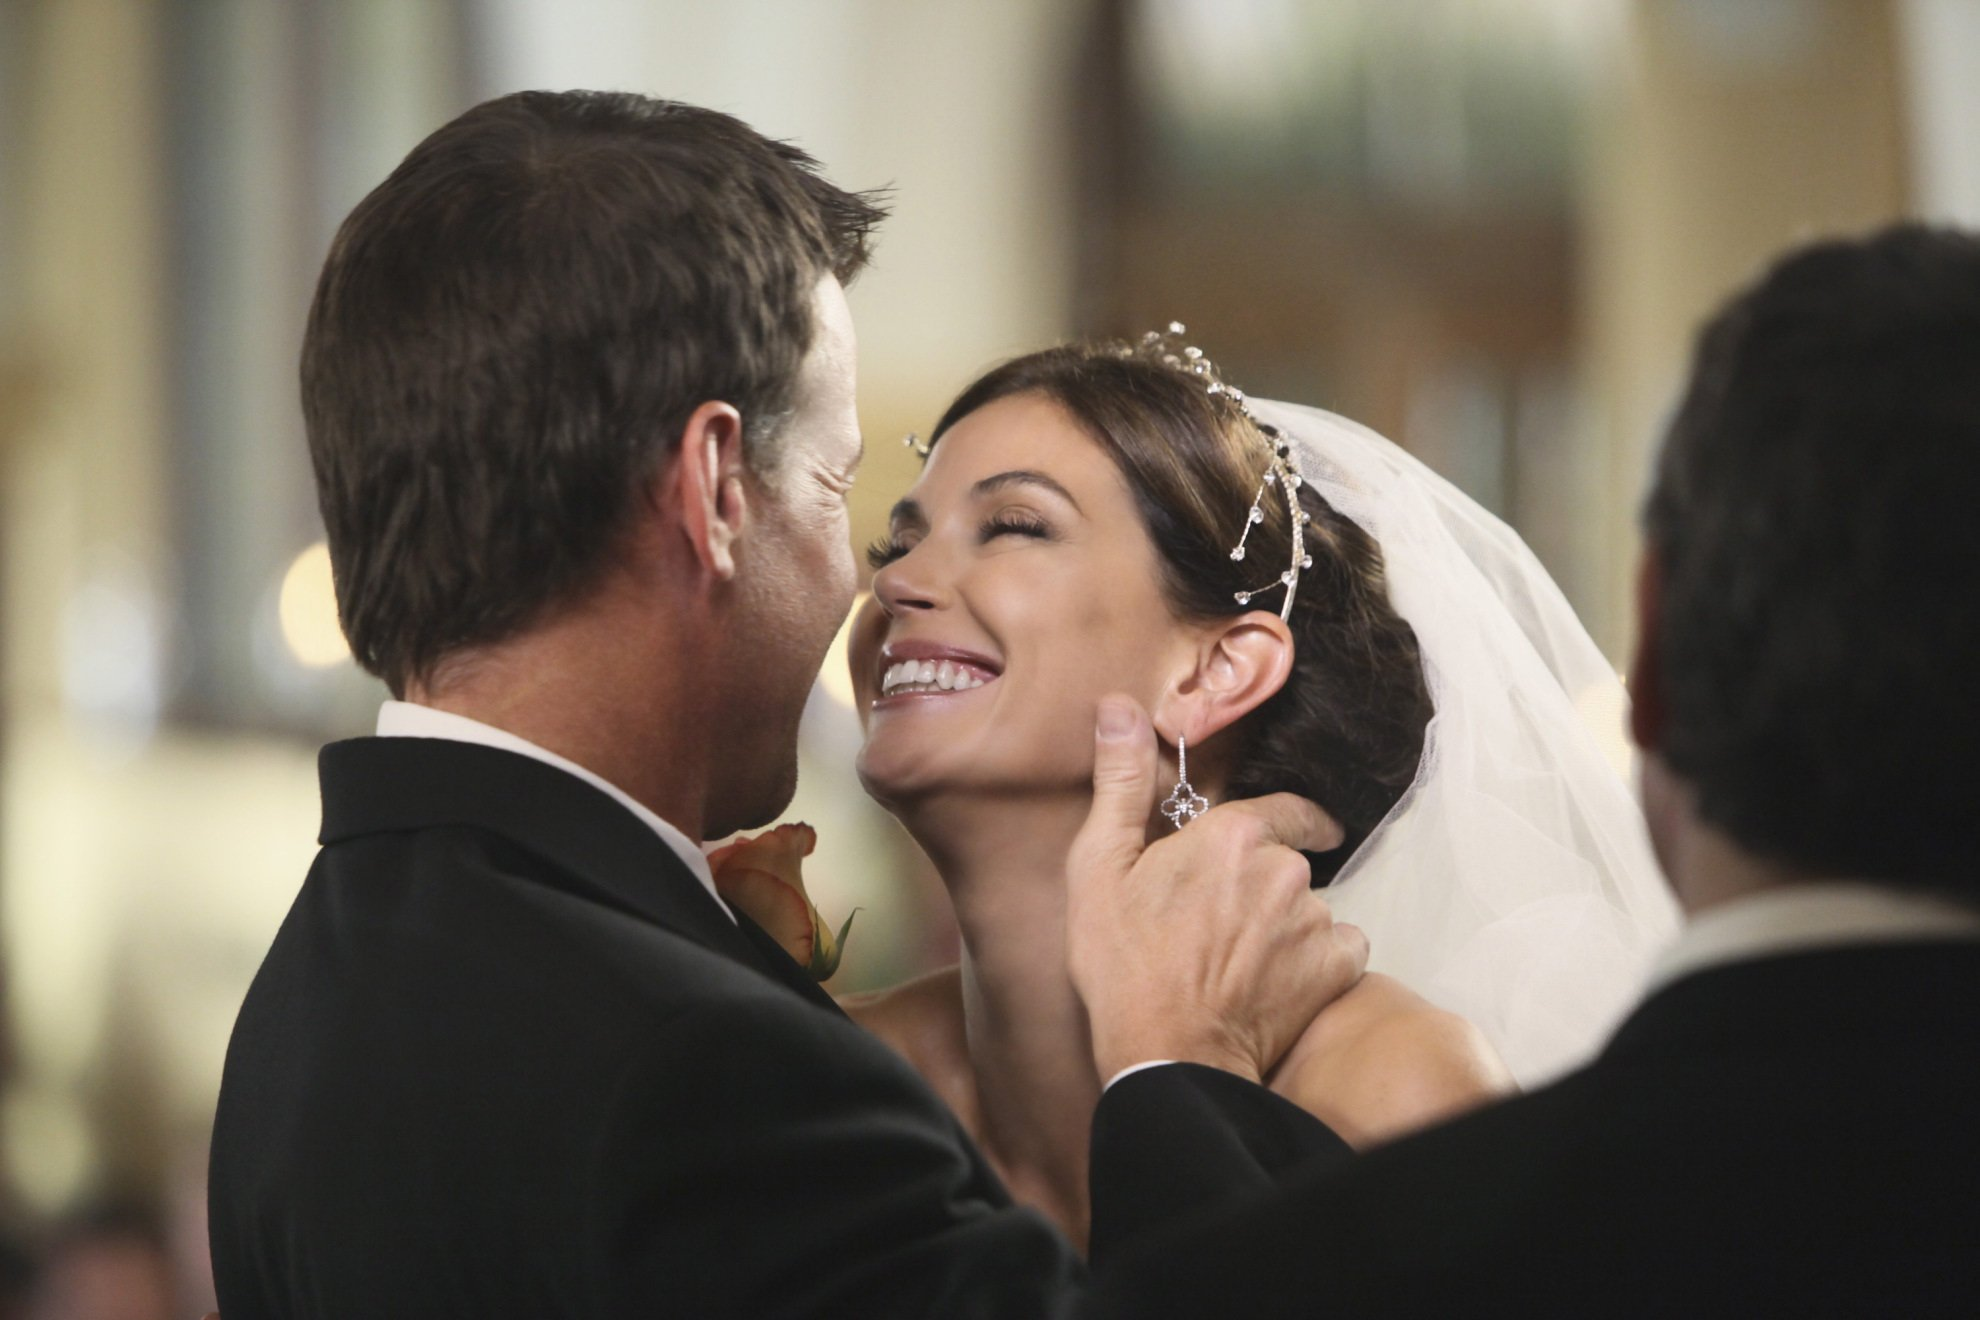 http://images2.fanpop.com/image/photos/9200000/Susan-and-Mike-wedding-desperate-housewives-9249759-1980-1320.jpg